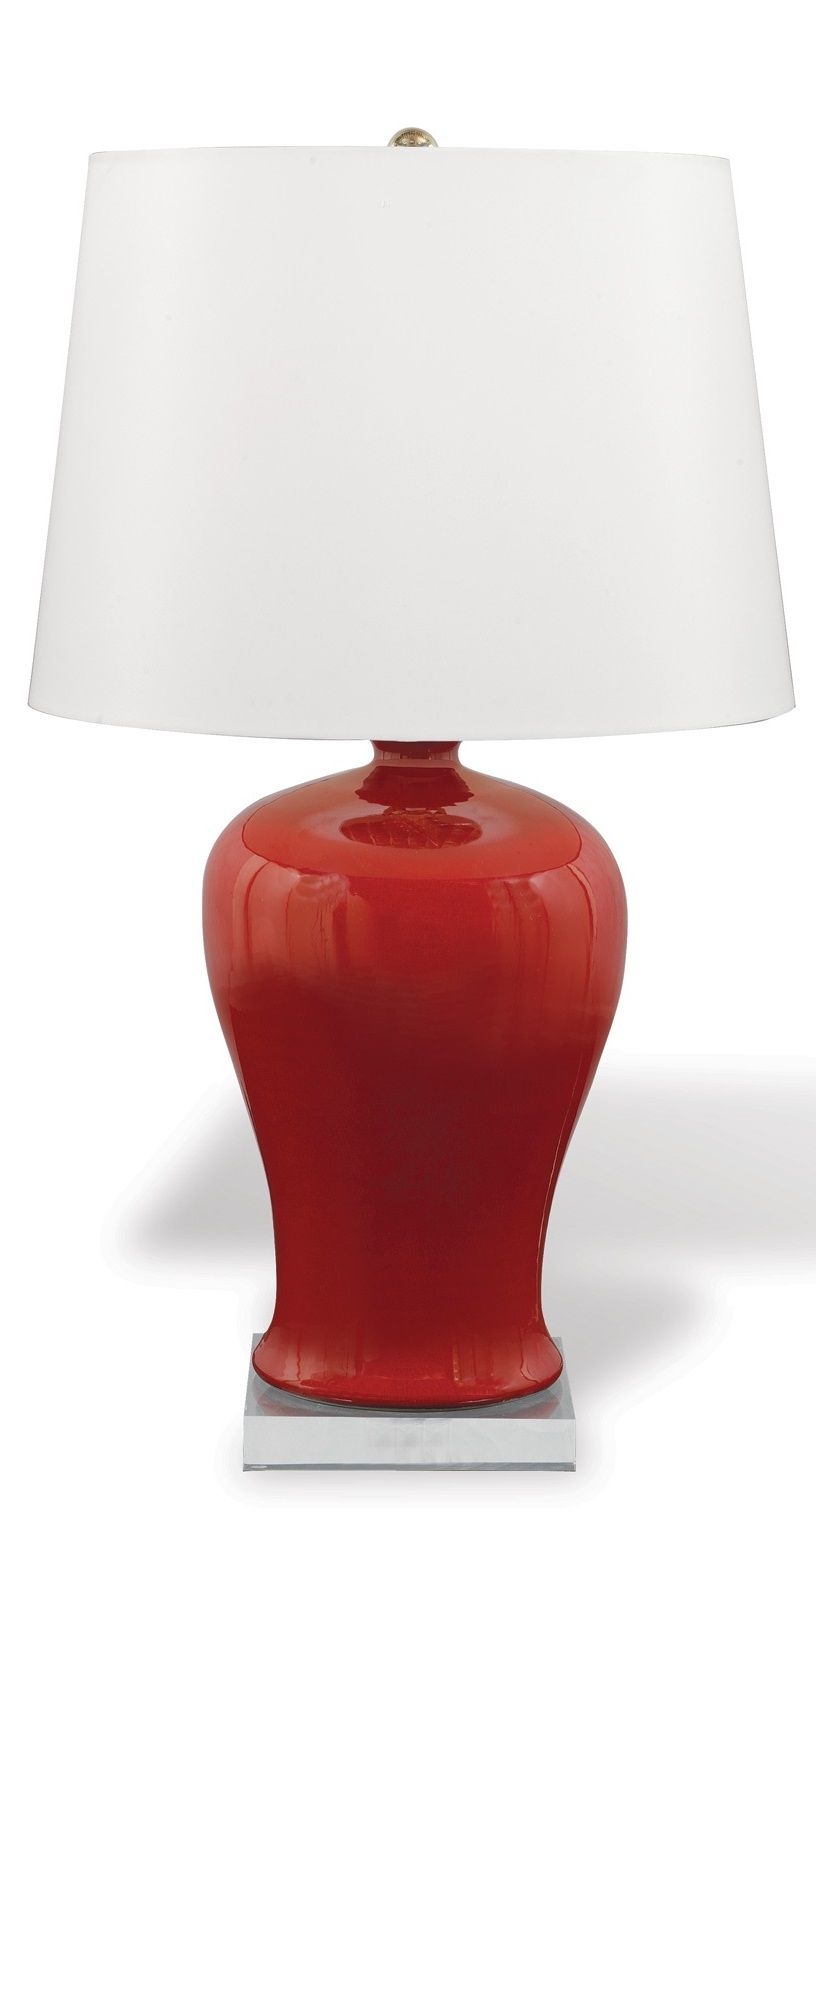 Red table lamp for your room